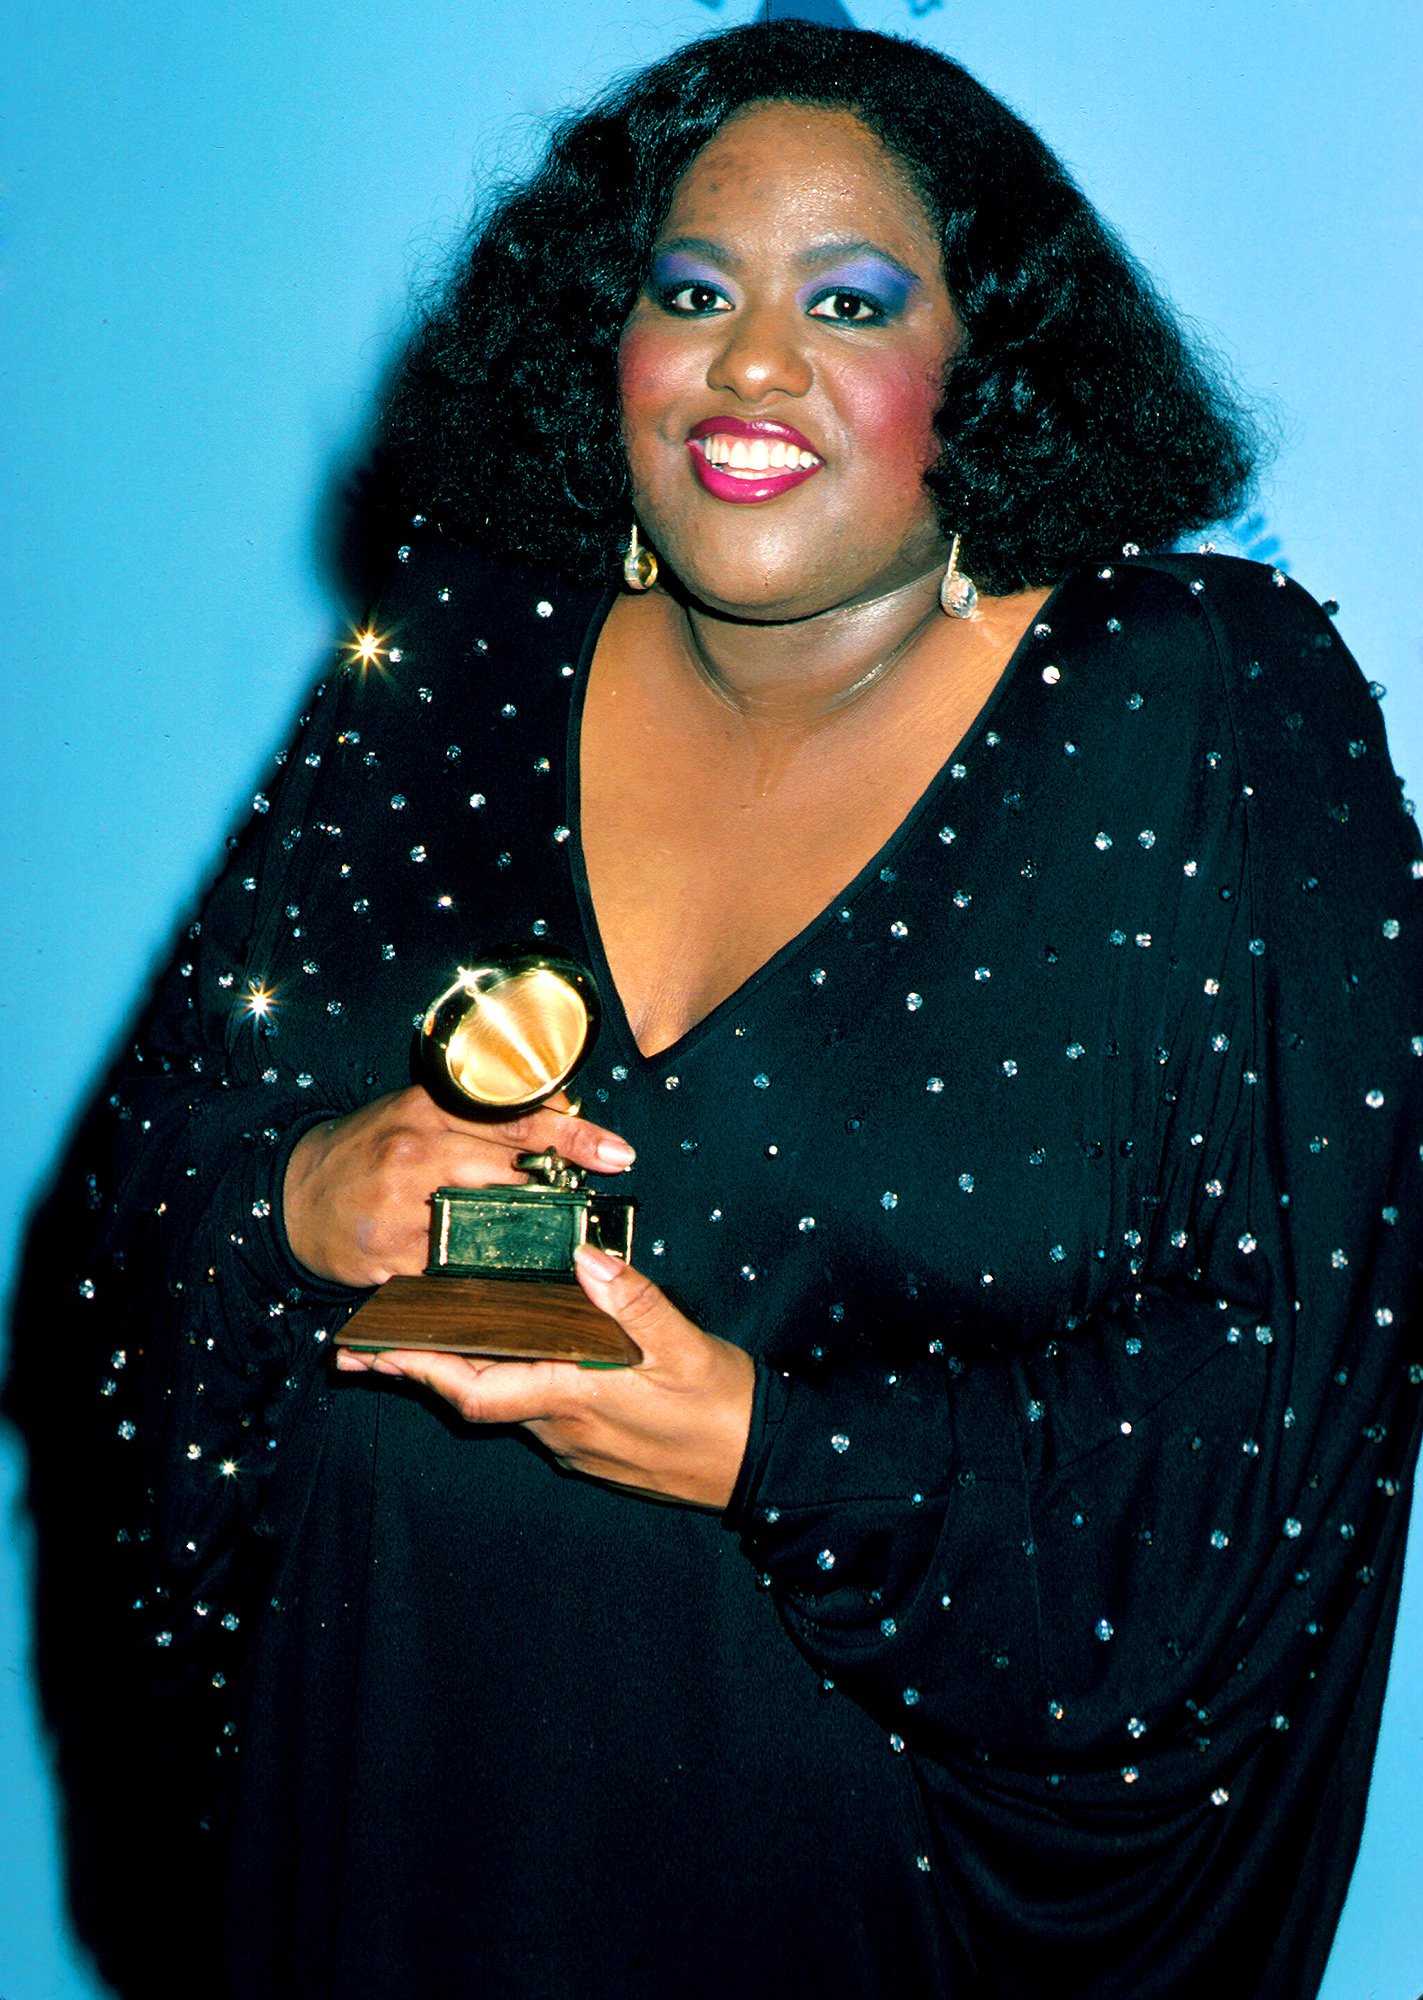 Singer Jennifer Holliday holding her award at Grammy Awards. (Photo by Time Life Pictures/DMI/The LIFE Picture Collection/Getty Images)